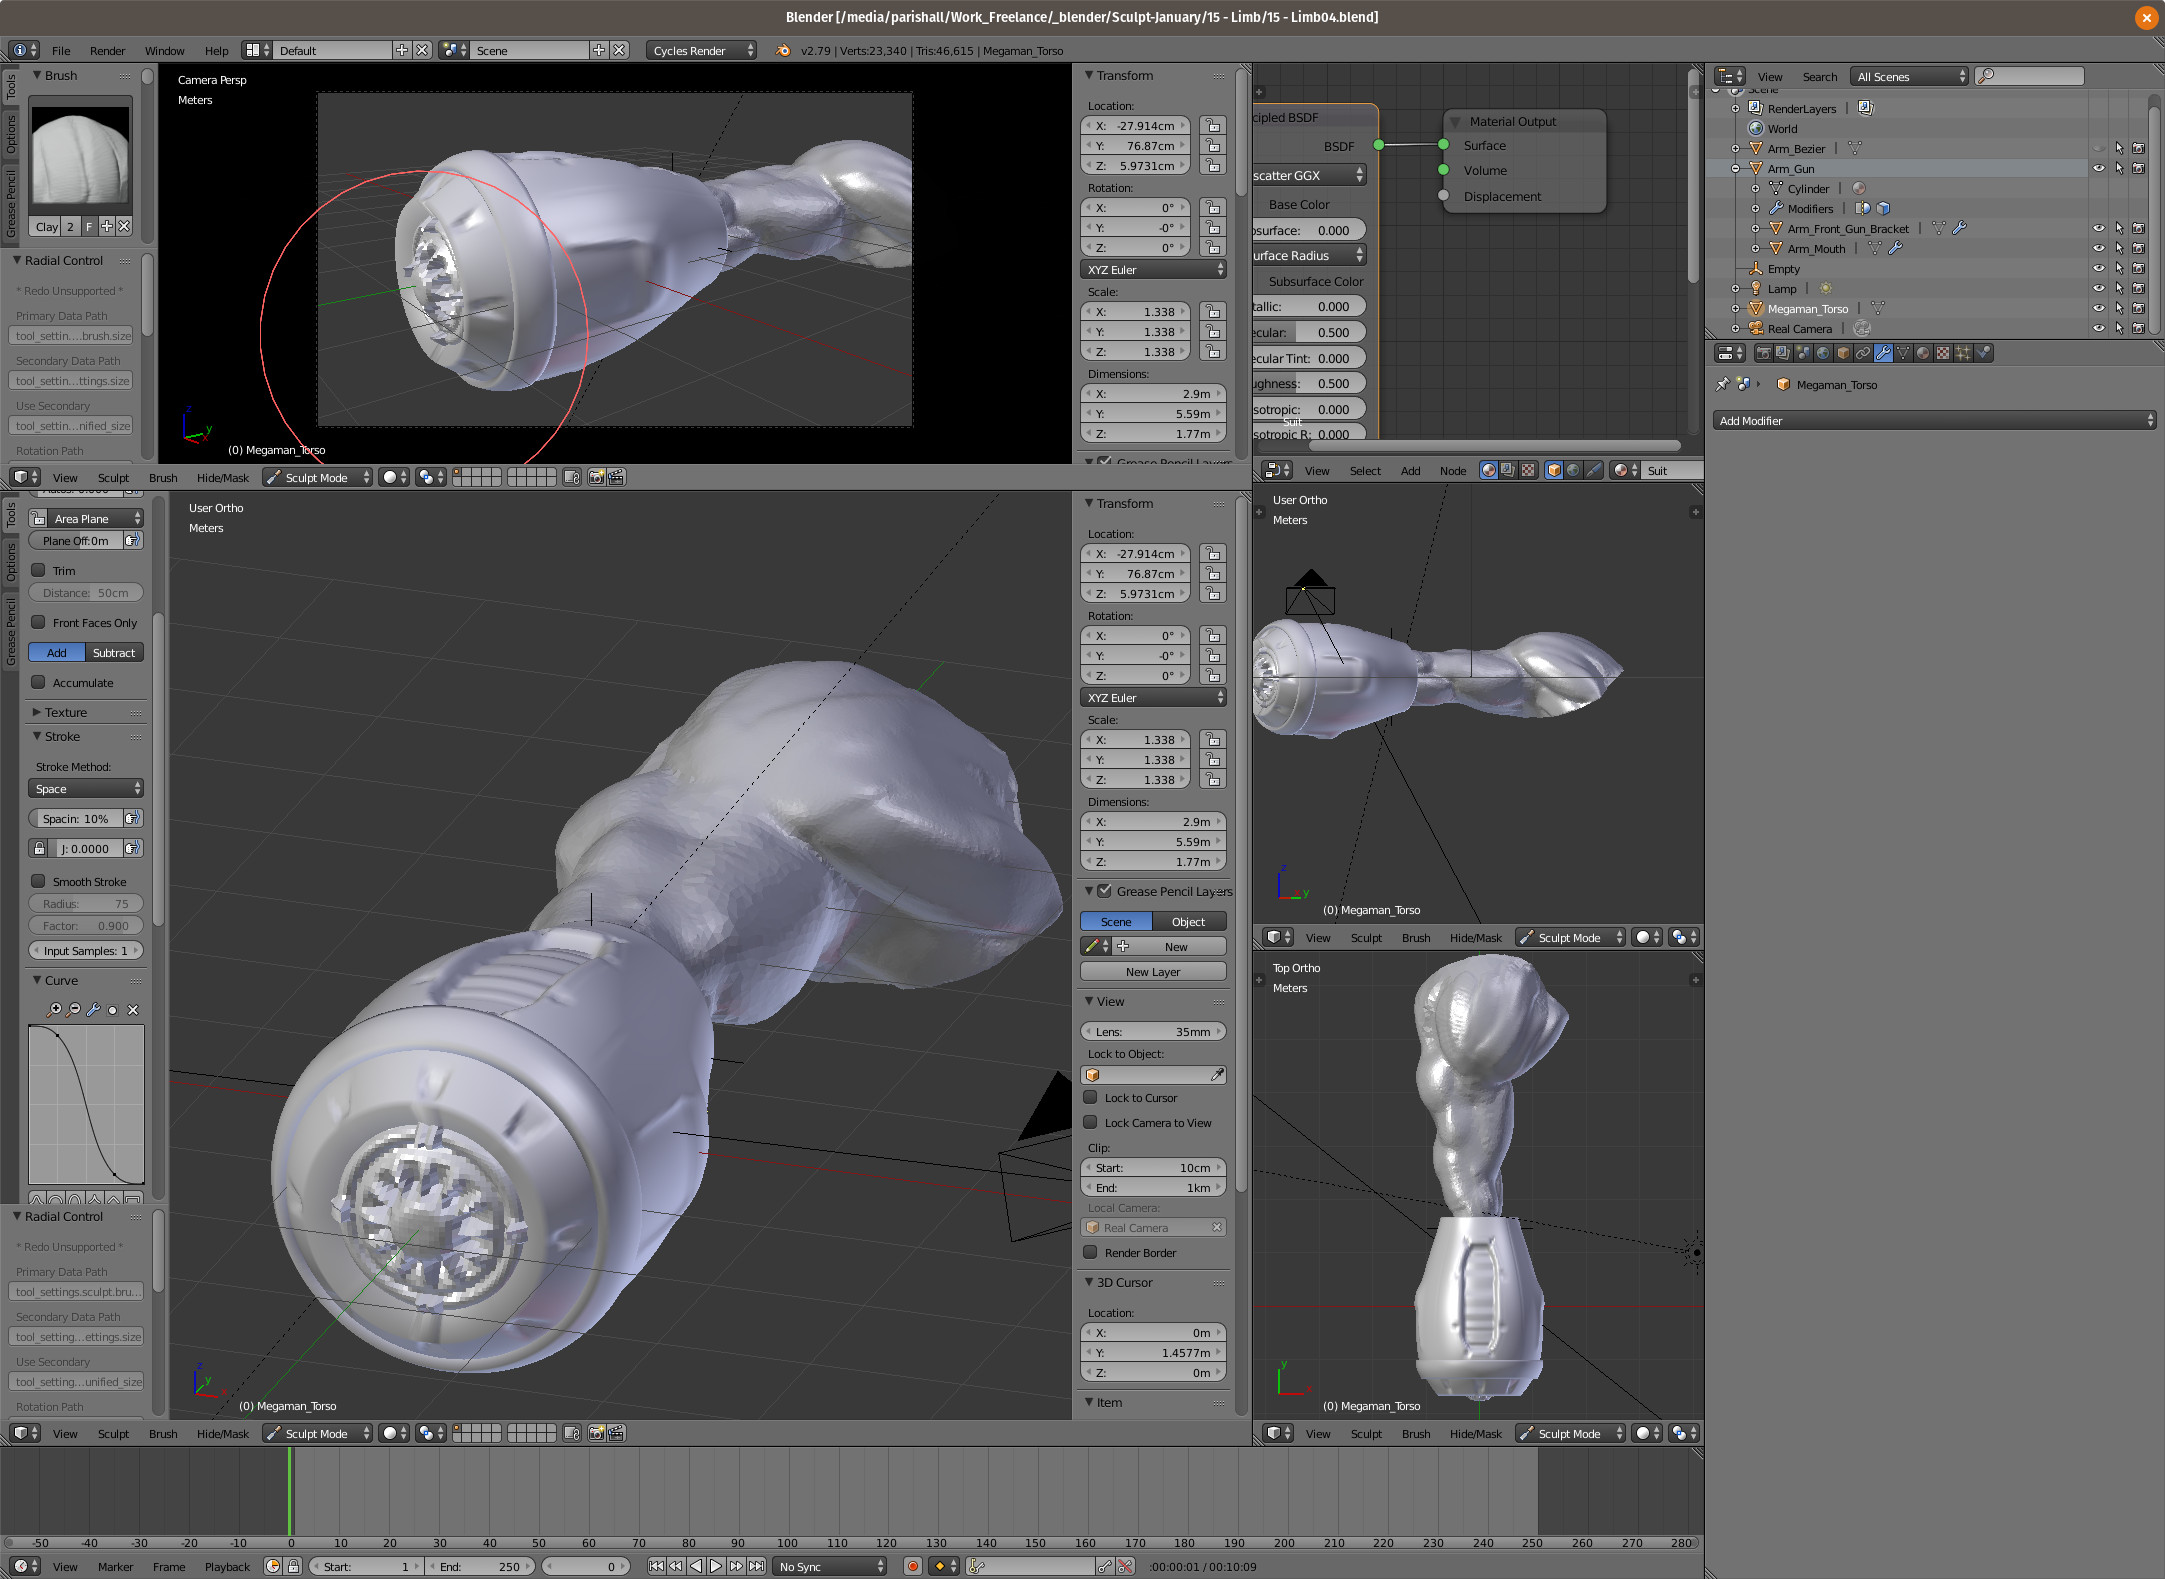 It was fun to sculpt the details in the plasma cannon. Maybe some day I'll clean it up and develop it more.